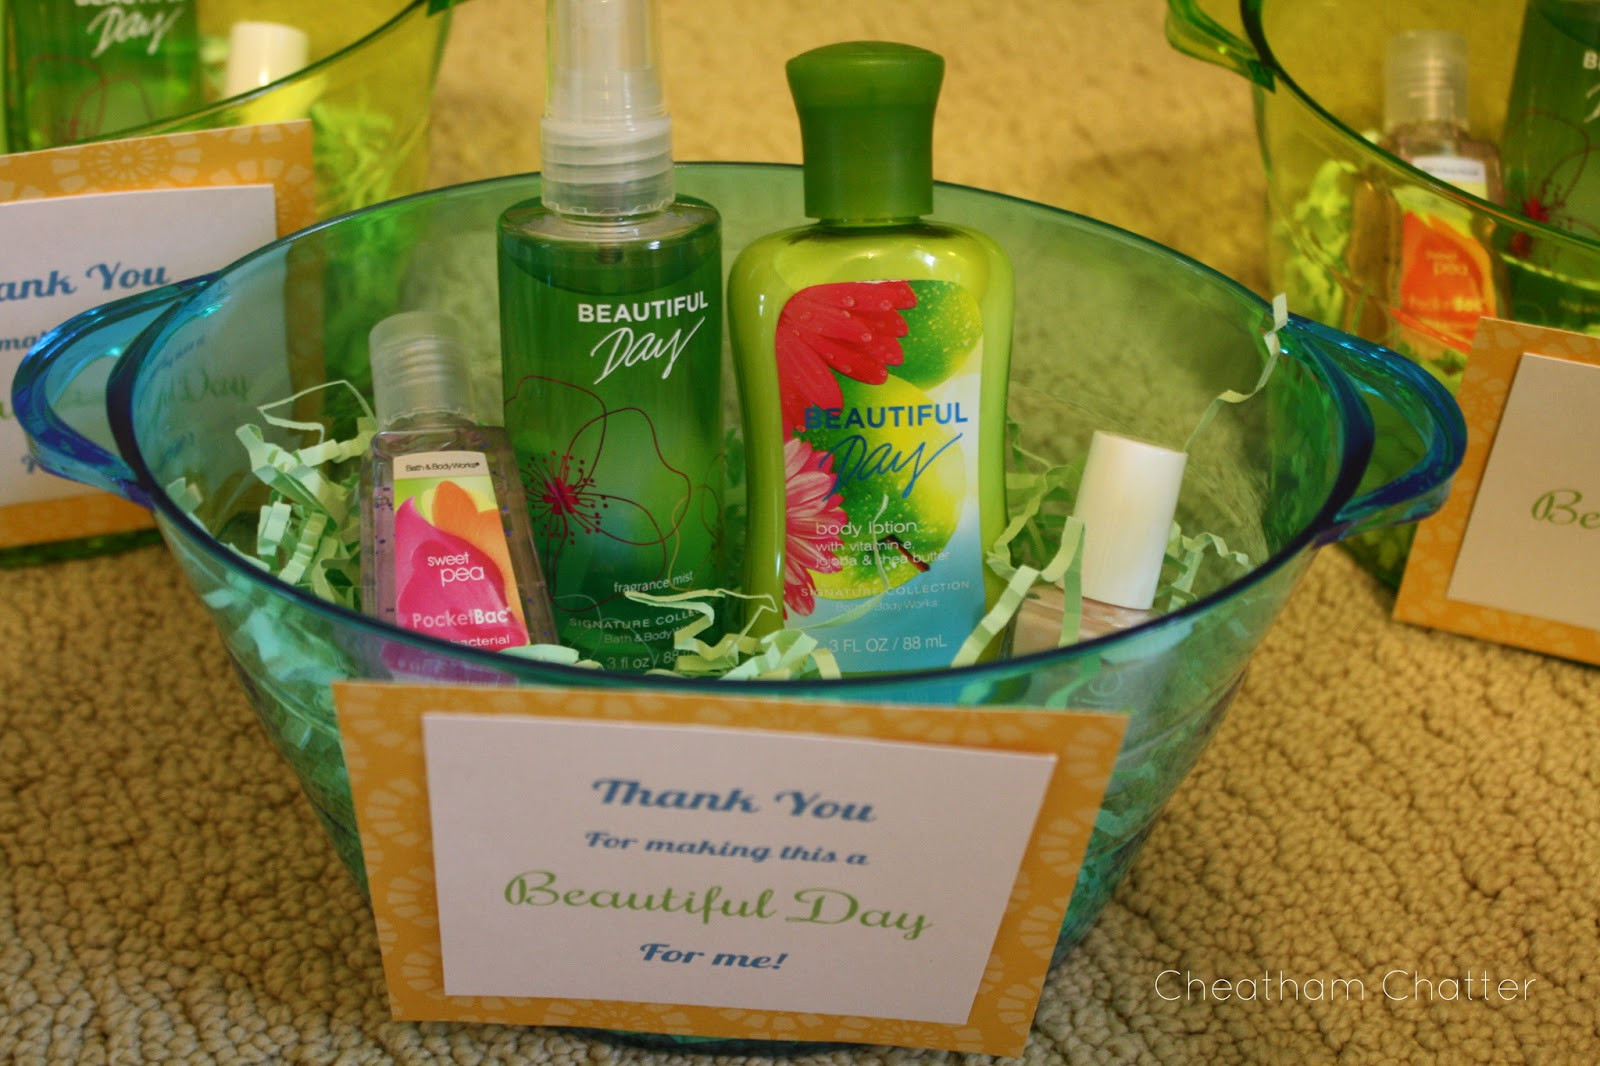 Best ideas about Hostess Gift Ideas For Baby Shower . Save or Pin Cheatham Chatter Baby Shower Favors & Hostess Gifts Now.